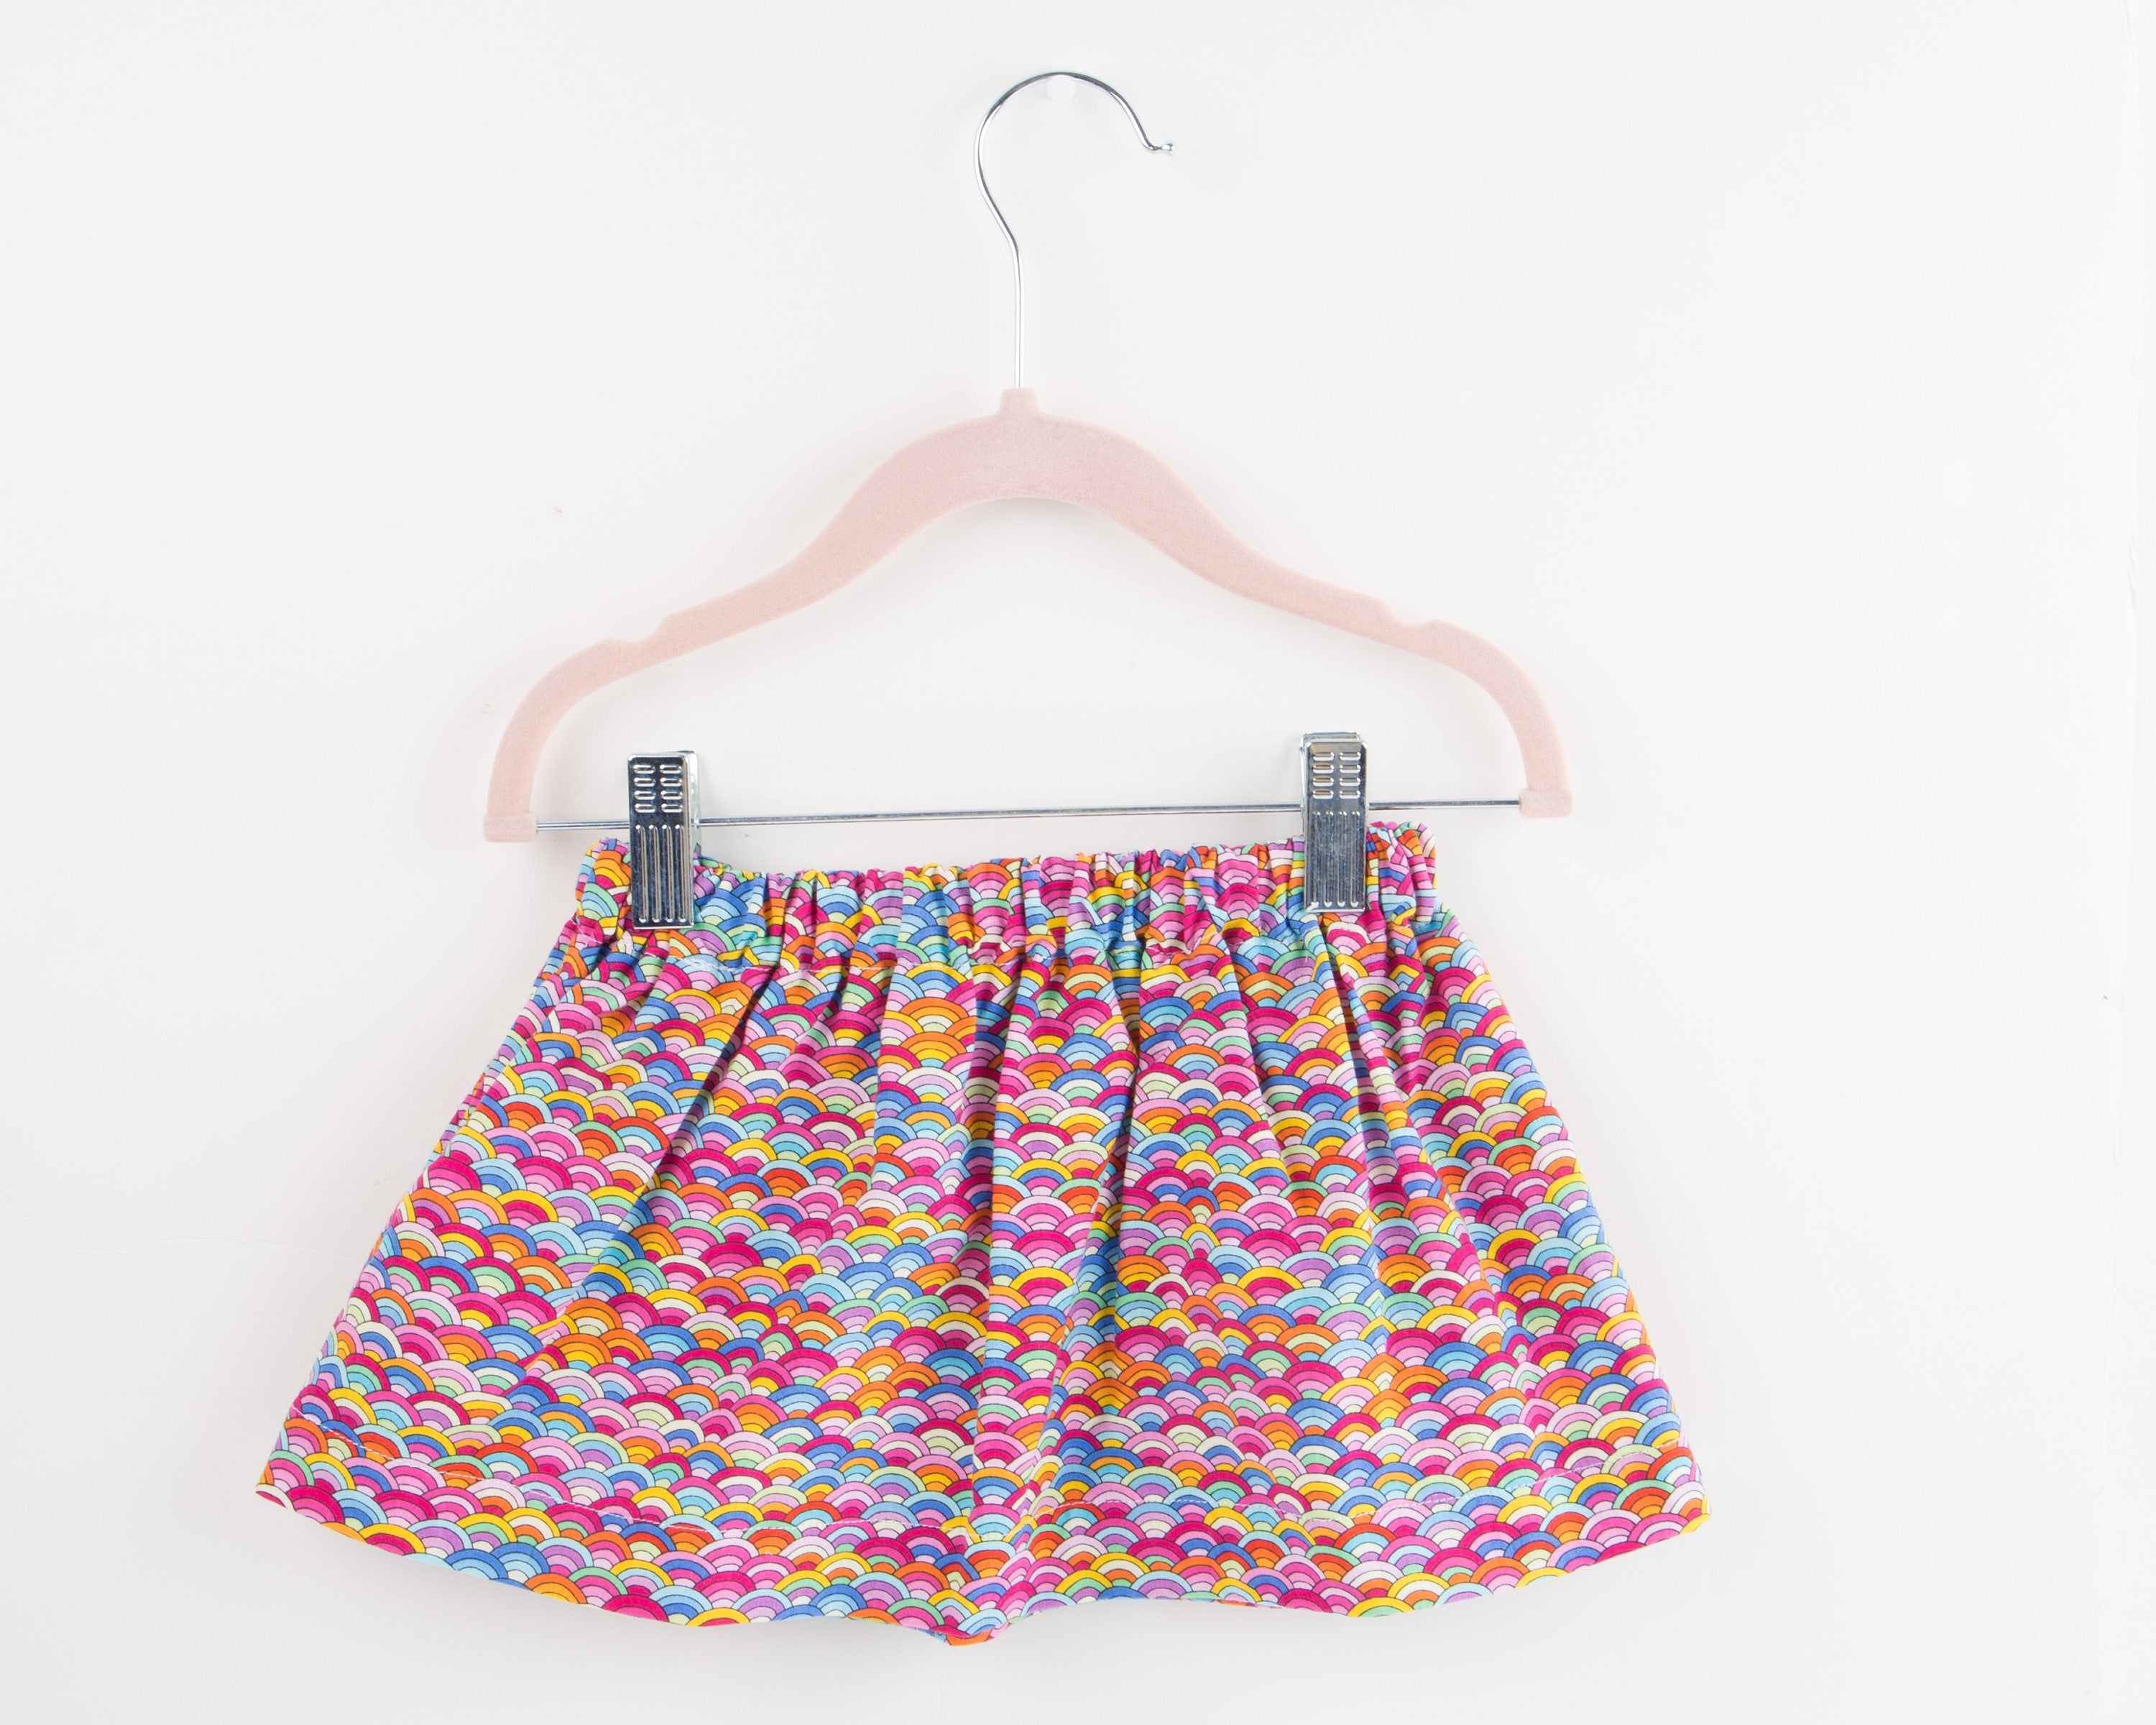 Toddler Skirt - Ready to Ship - Toddler Skirt Handmade - Baby Skirt - Toddler Girl Skirt - Rainbow Skirt - Toddler Girl Clothes - Baby Girl